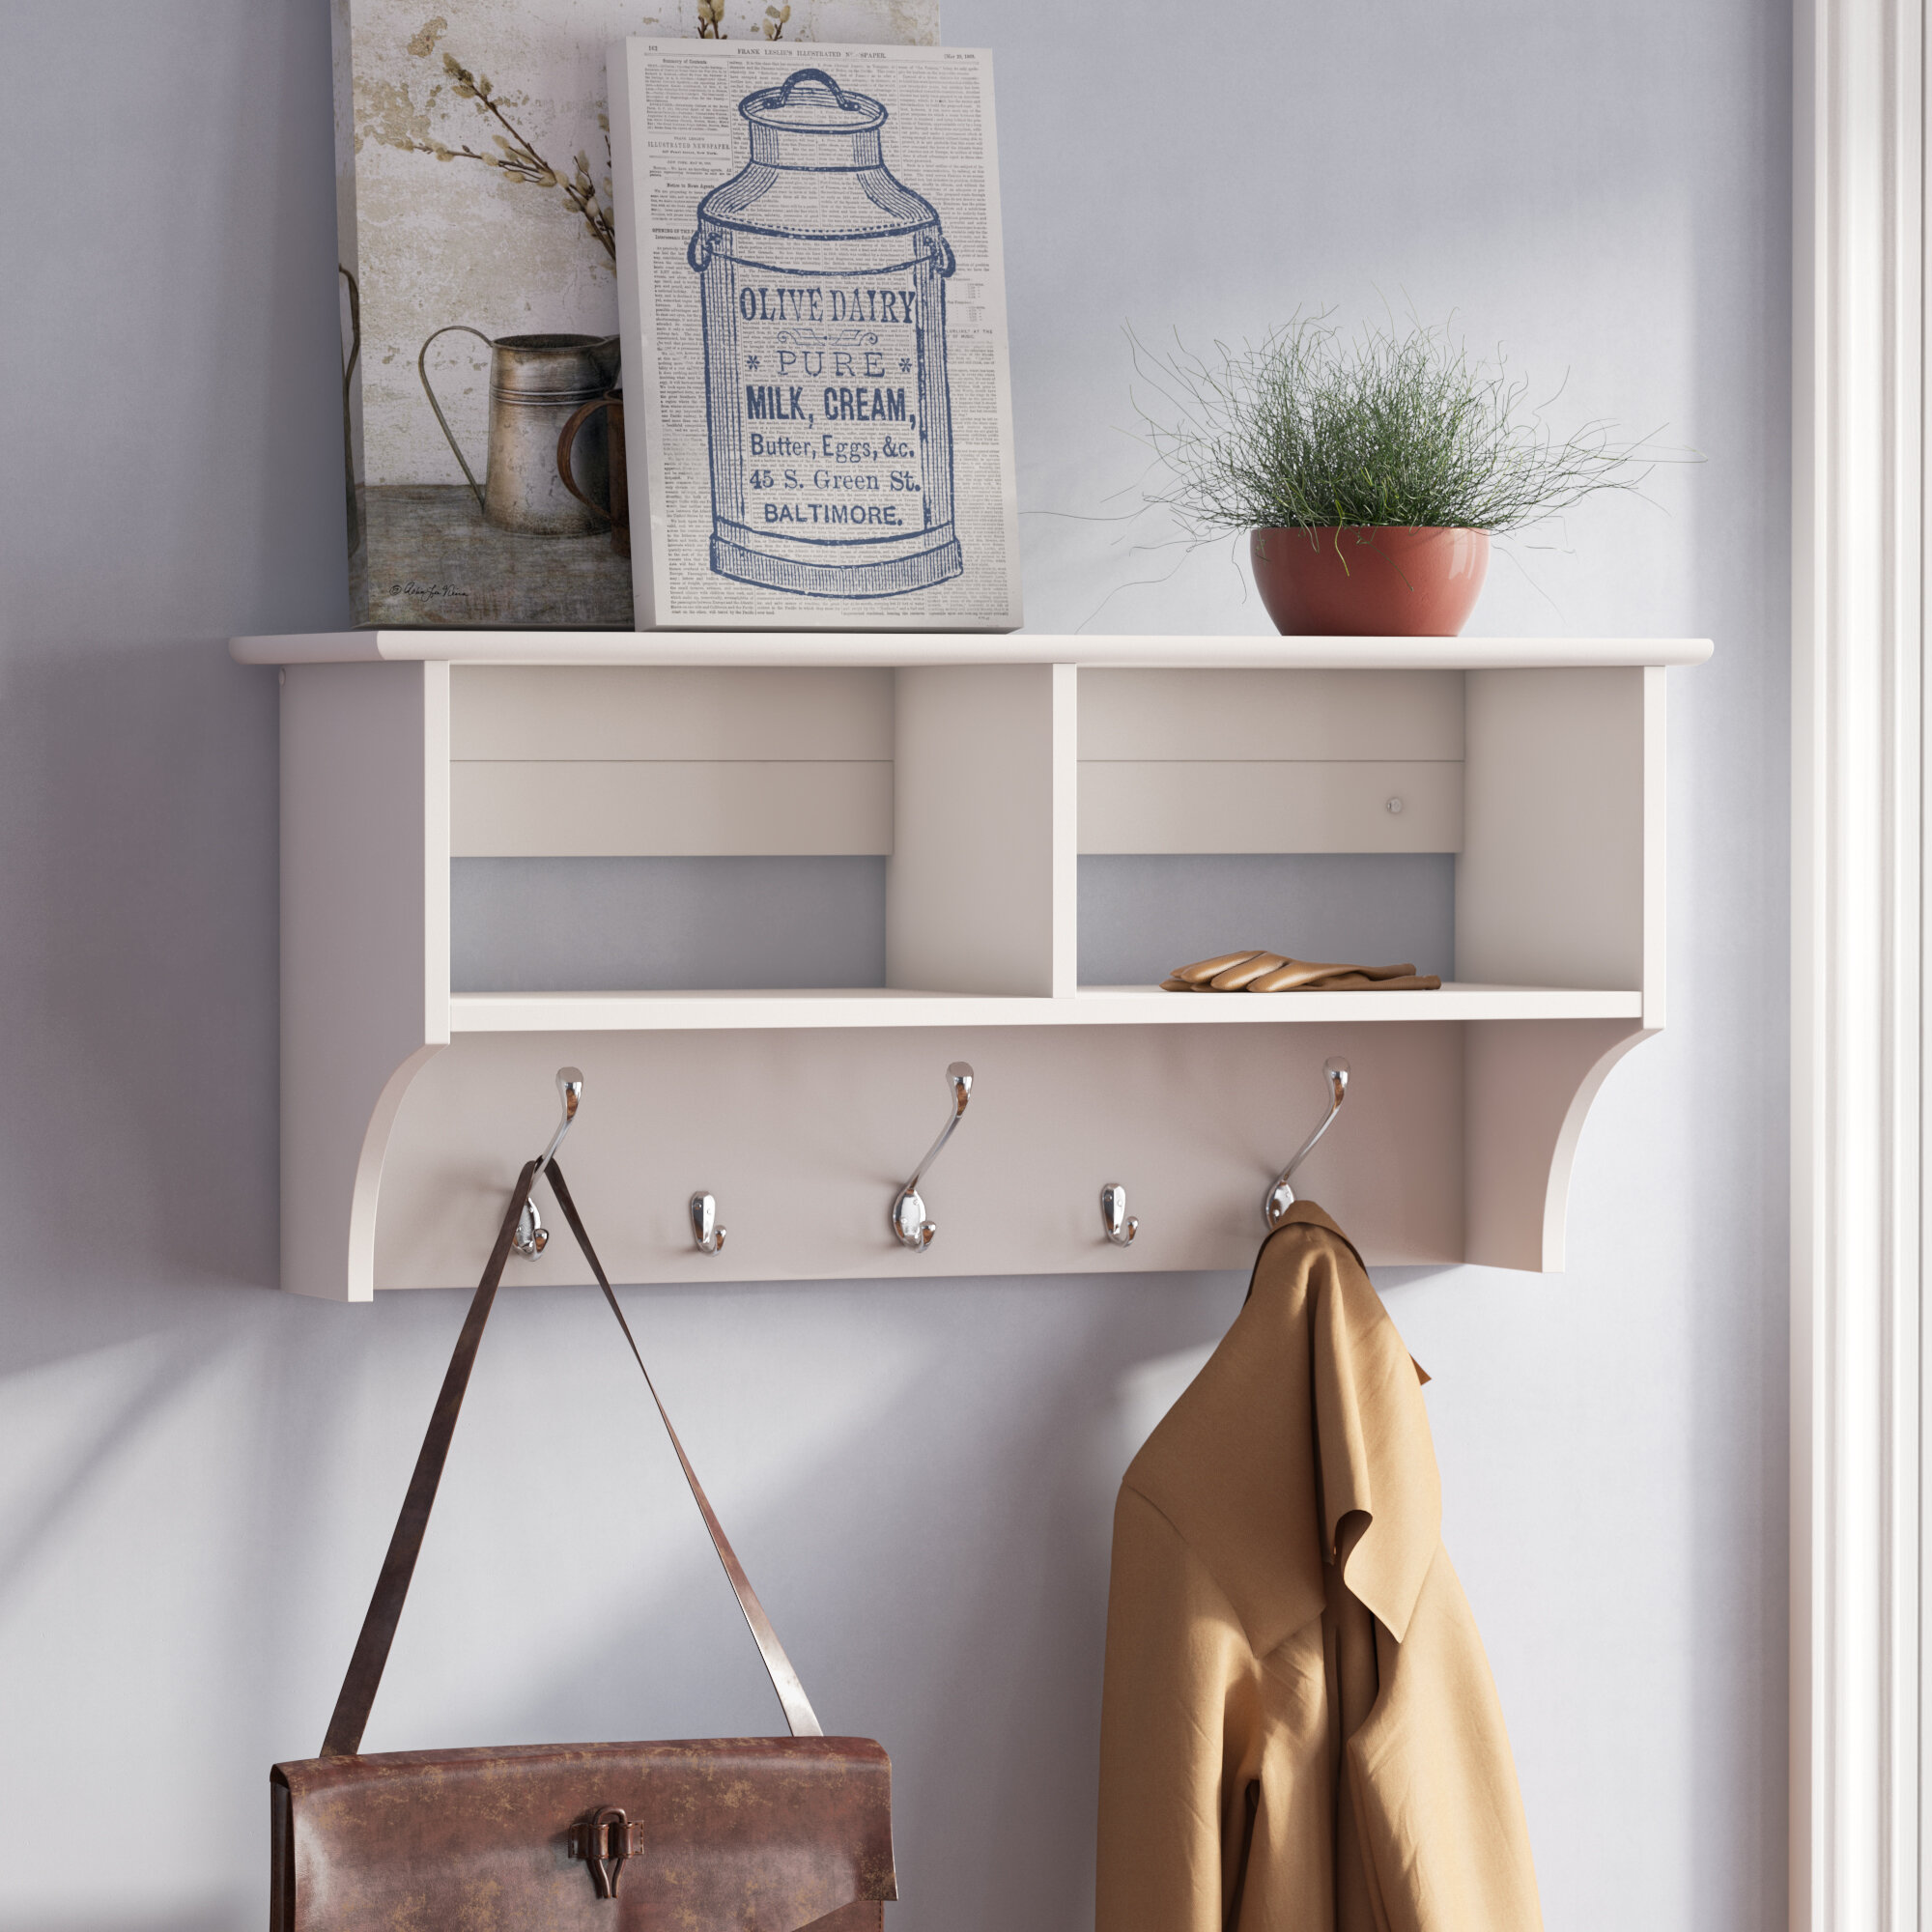 on diy for the connected rack picture frames sprucing with three by coat white wall wooden dazzling up black your shelf hangers interior it